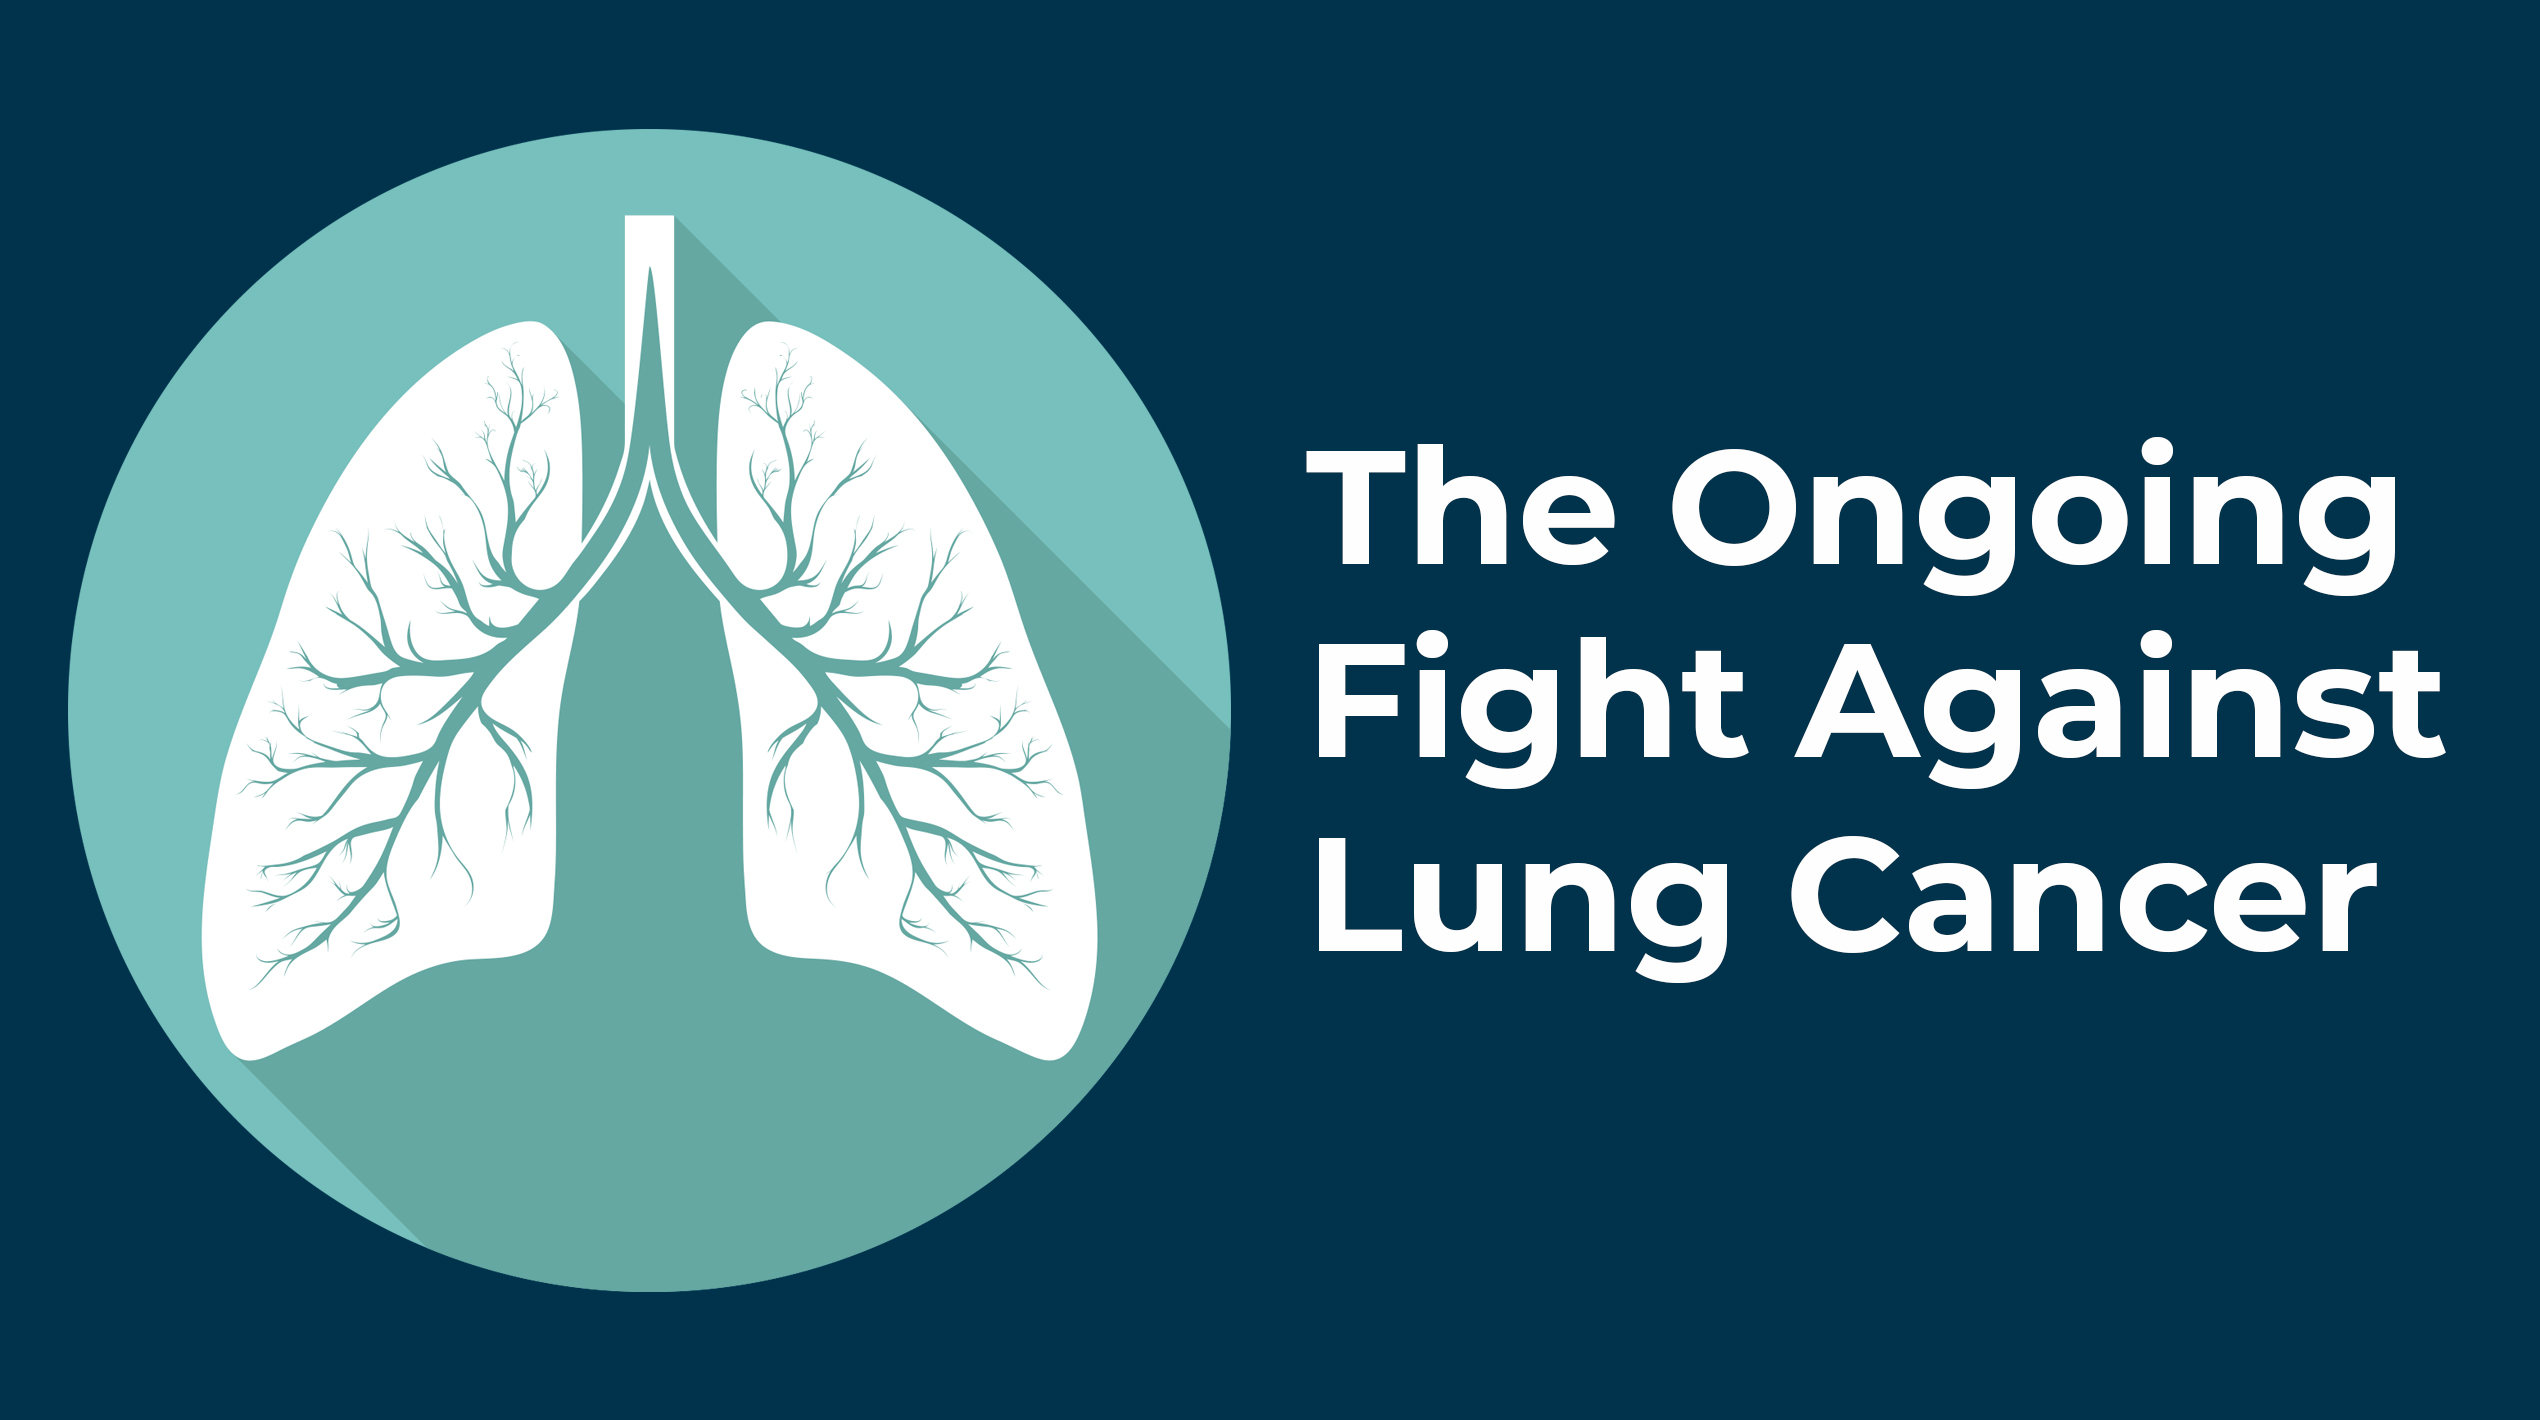 LungCancer_blog-2